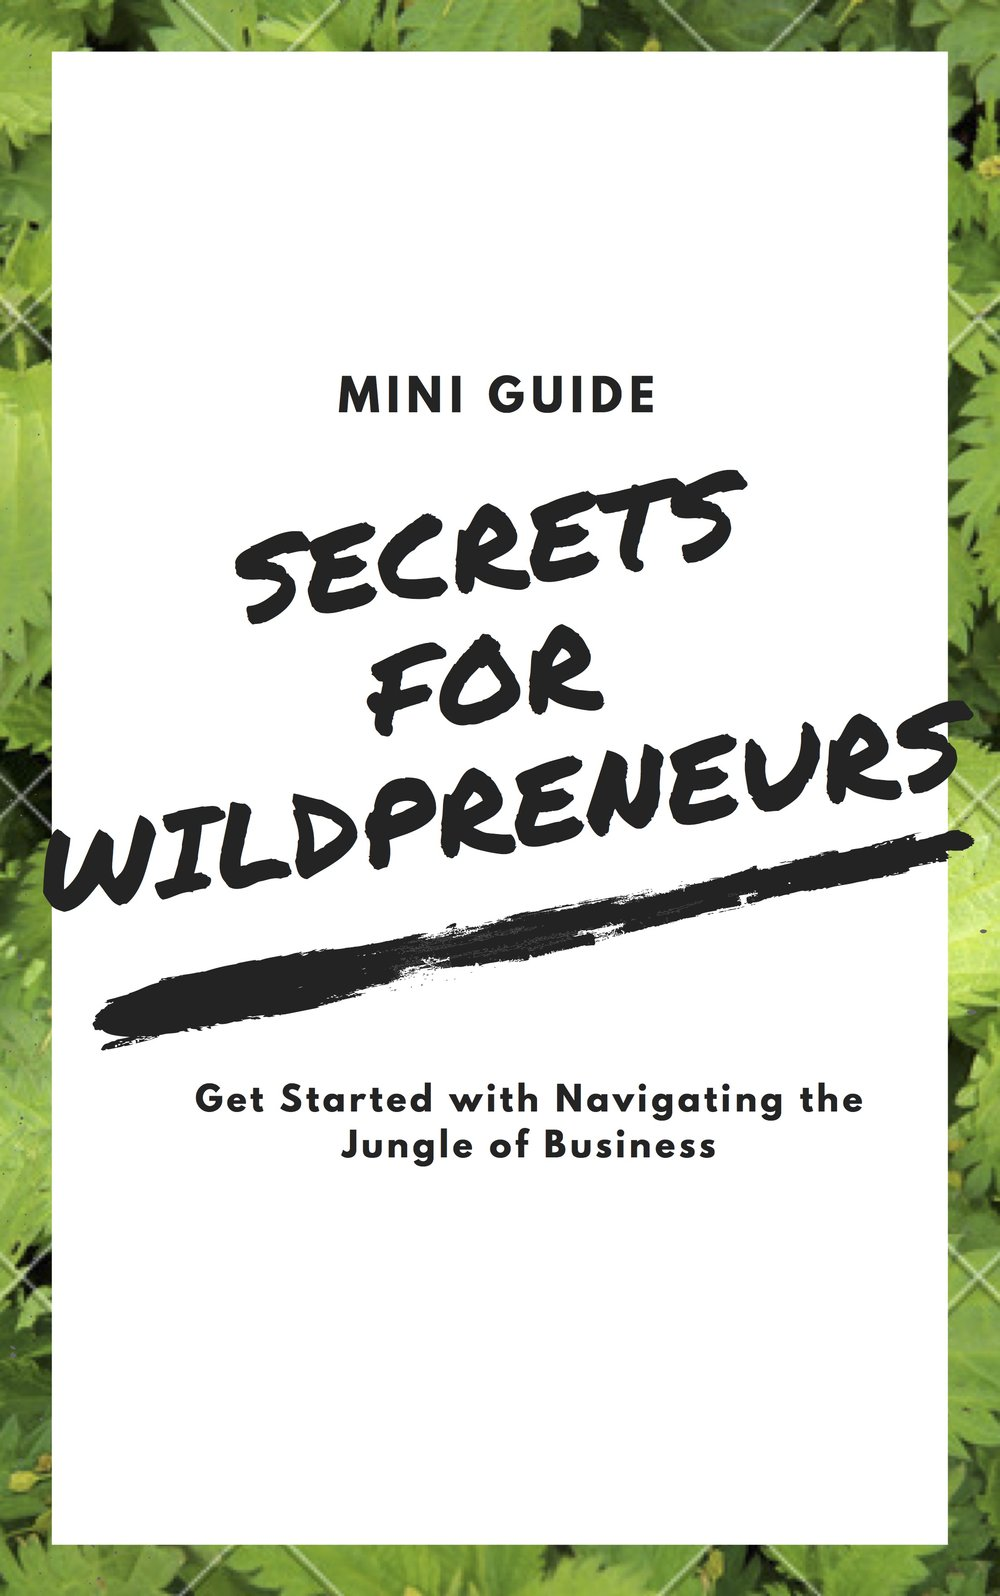 Free Guide for Wildpreneurs -